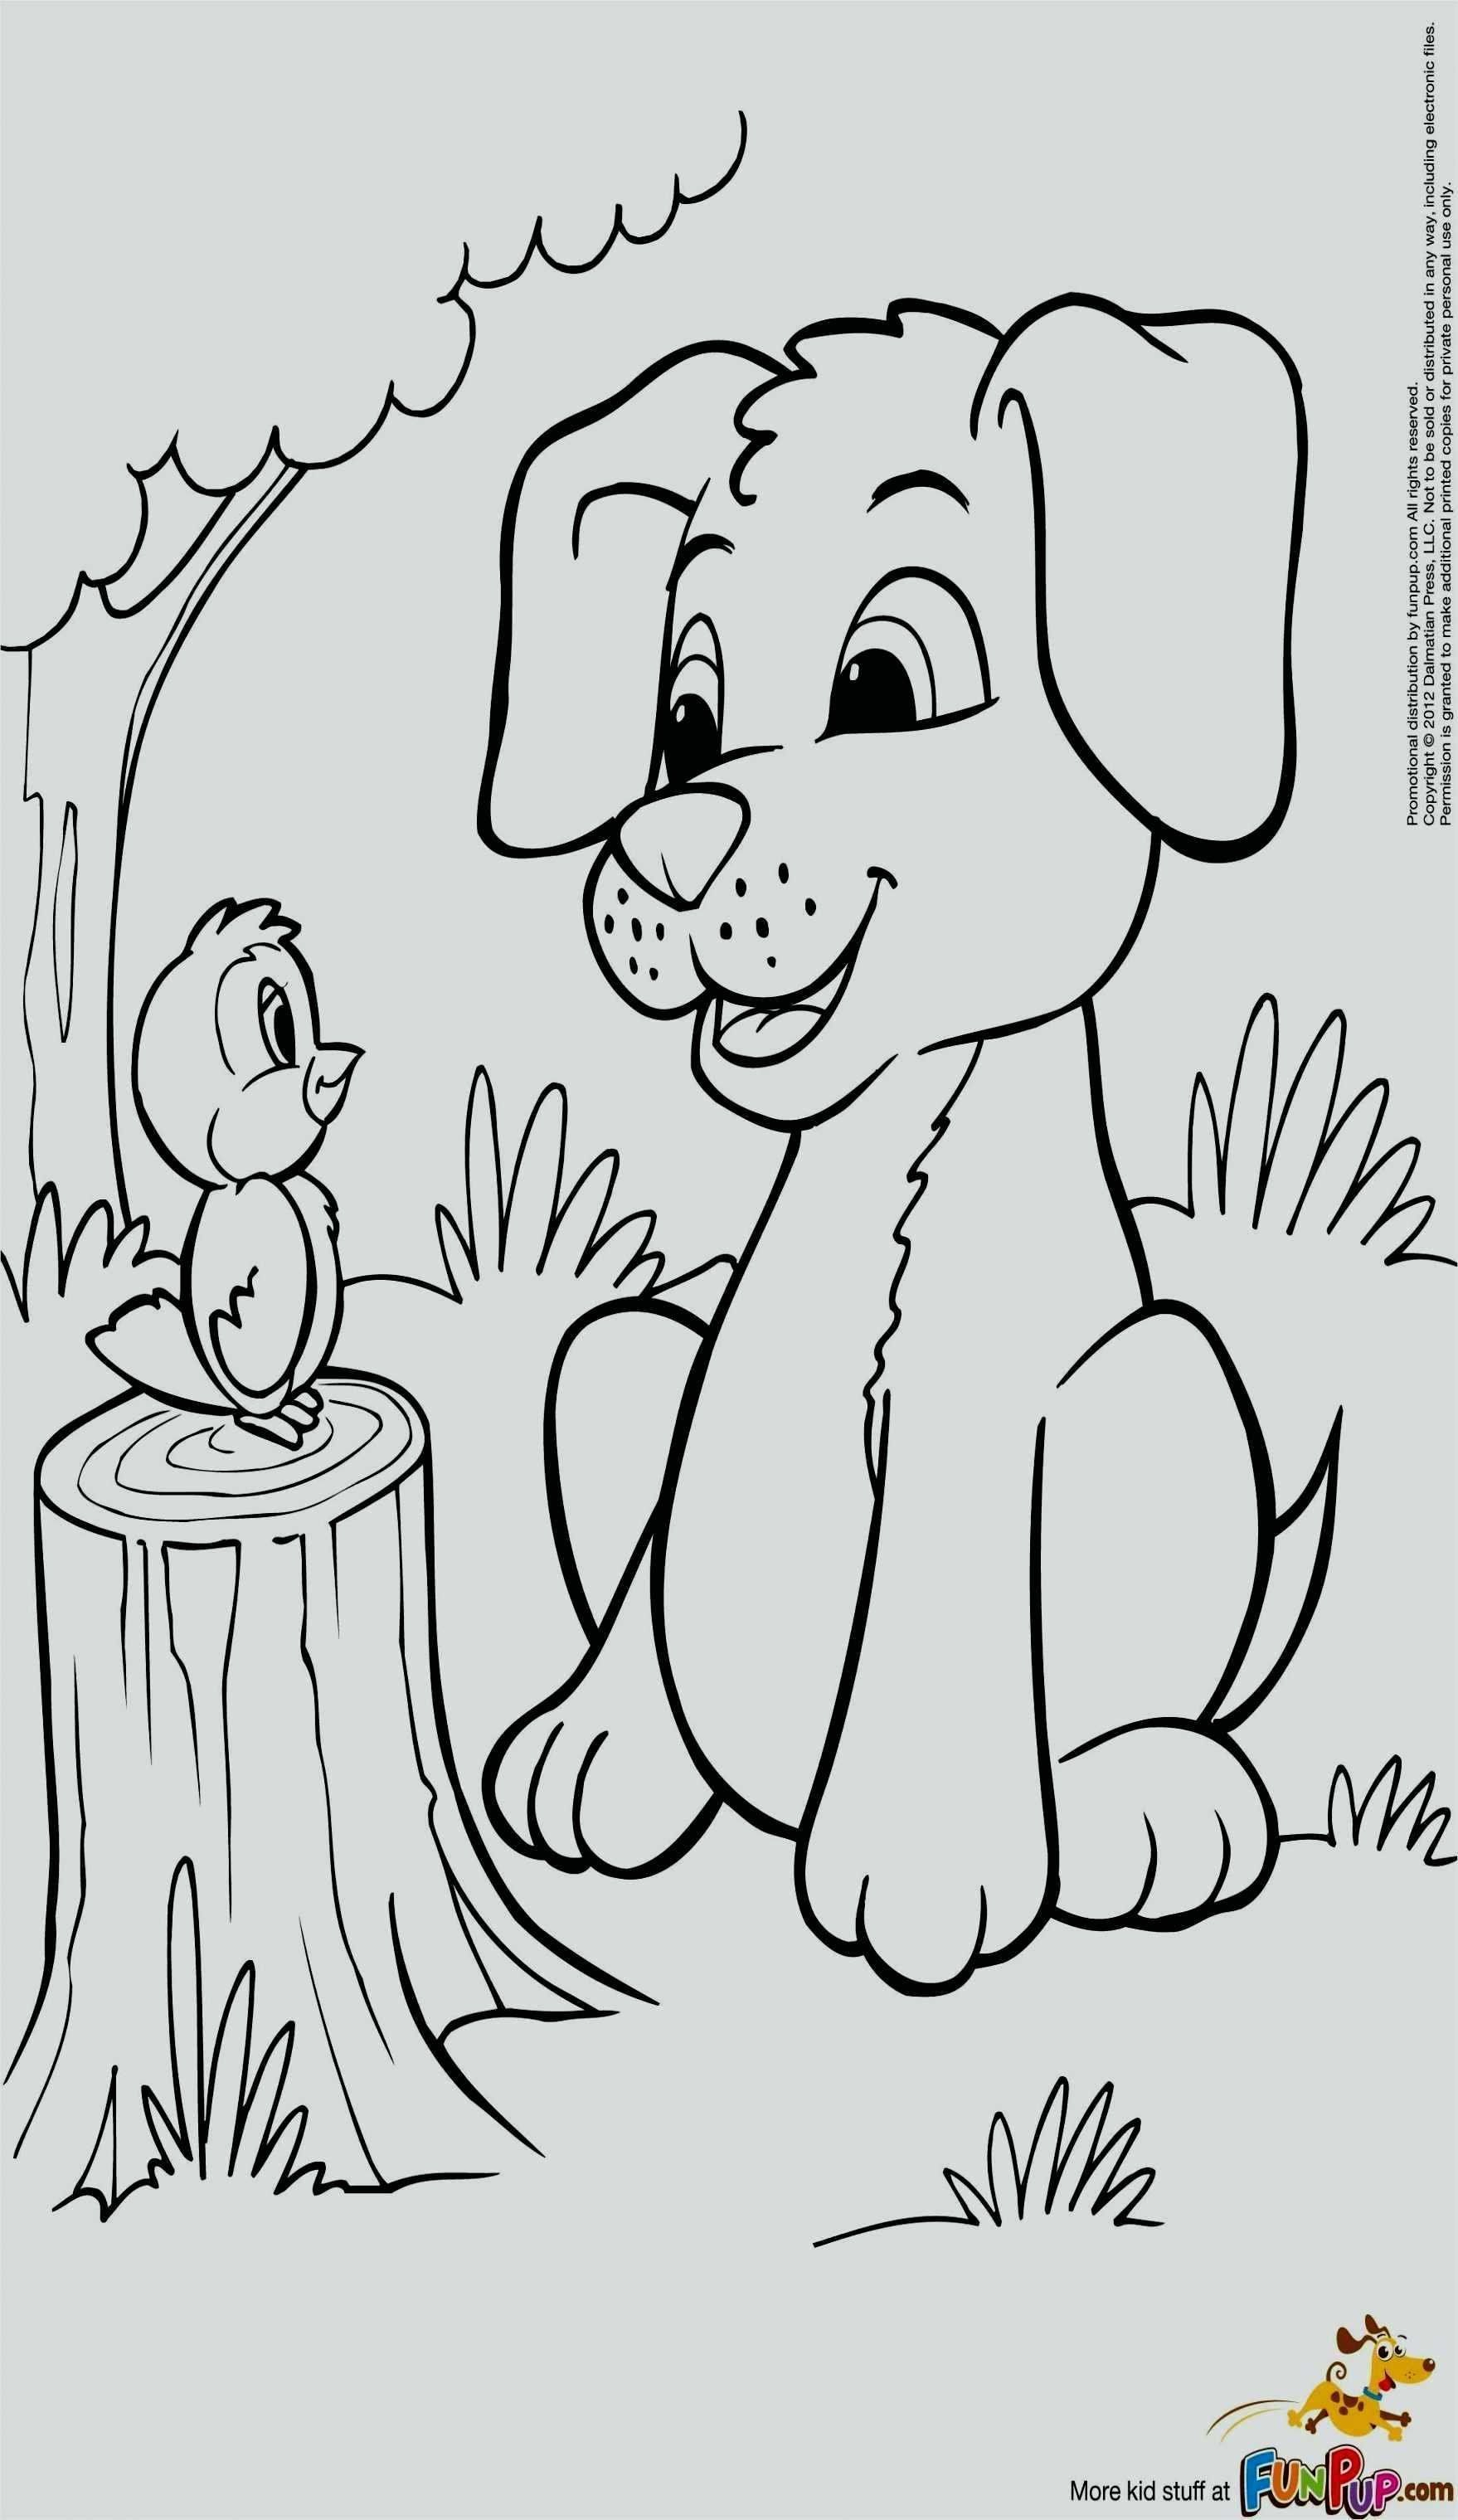 Animal Coloring Pages Kitten Awesome Free Coloring Pages Kittens And Puppies Cortexcolor Bird Coloring Pages Puppy Coloring Pages Animal Coloring Pages